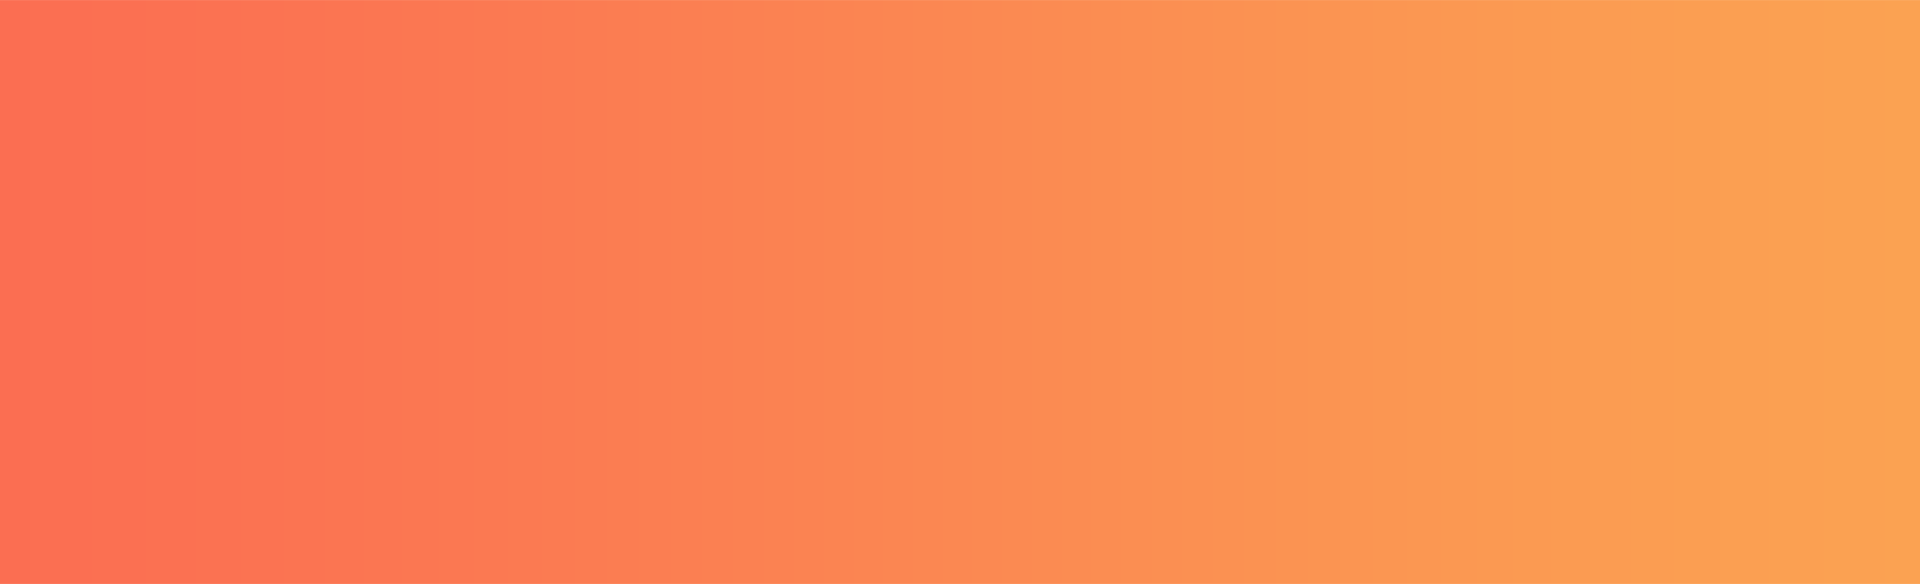 orange_slider_bg_2